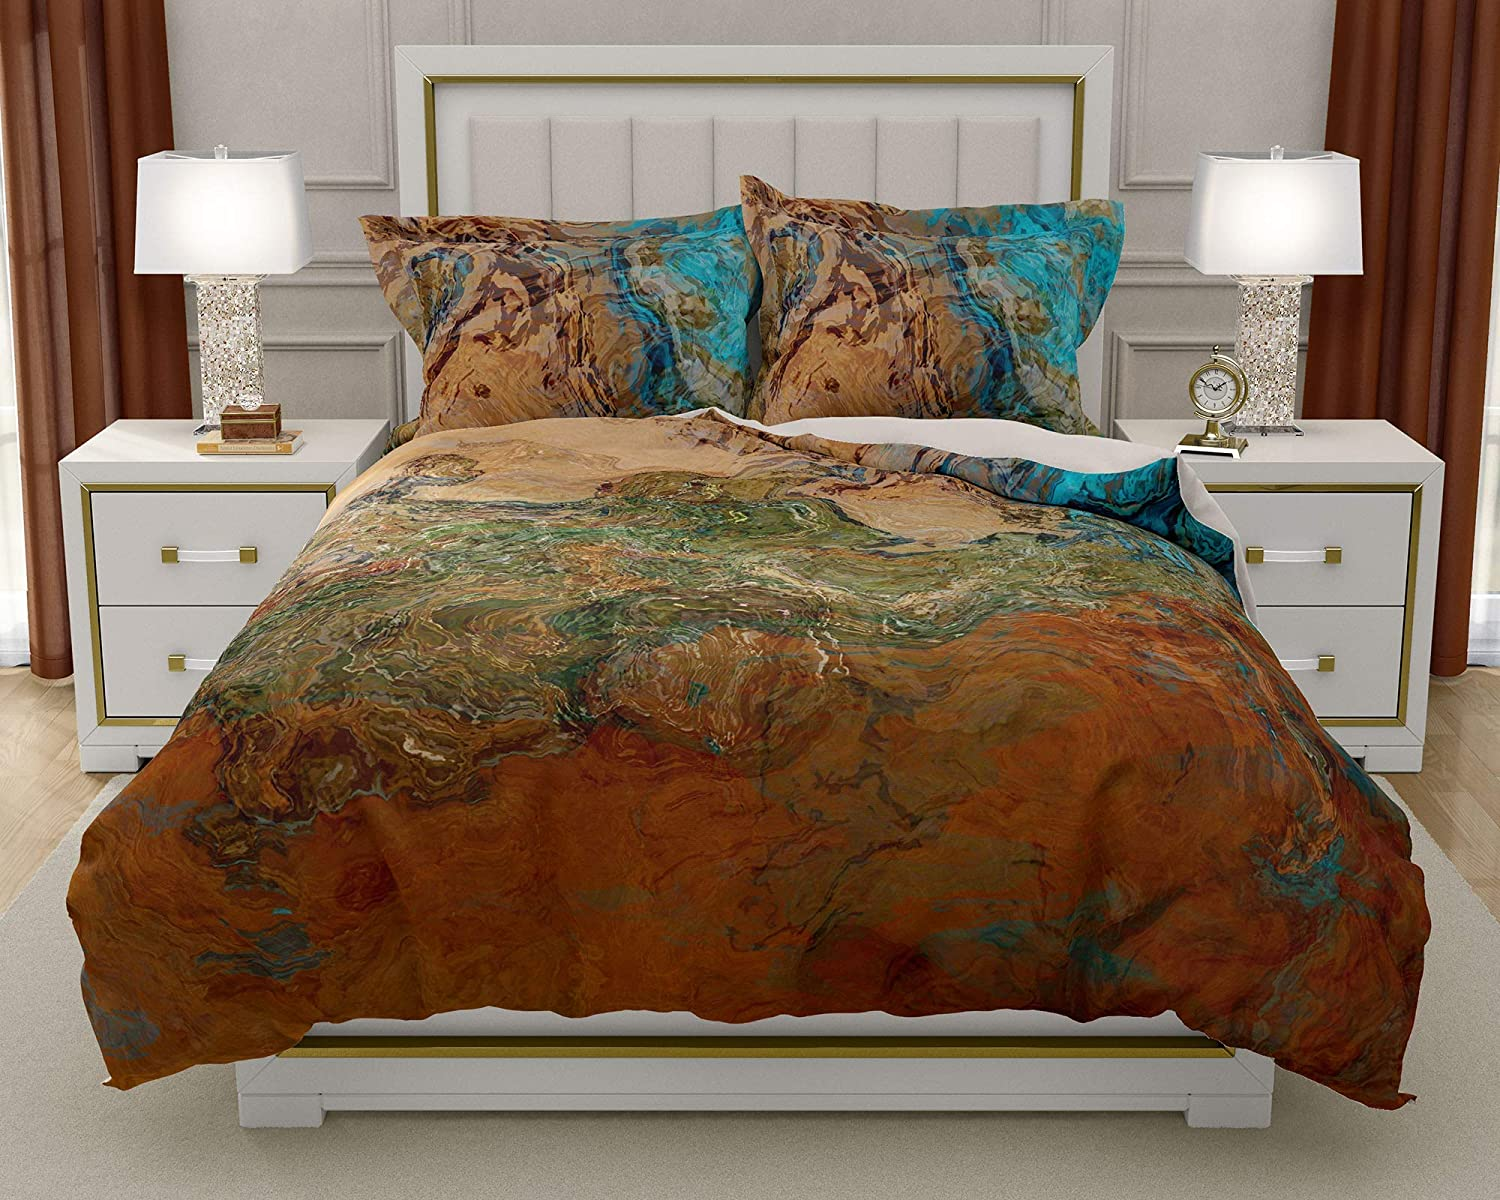 Image of King or Queen 3 pc Duvet Cover Set with abstract art, Canyon Sunset